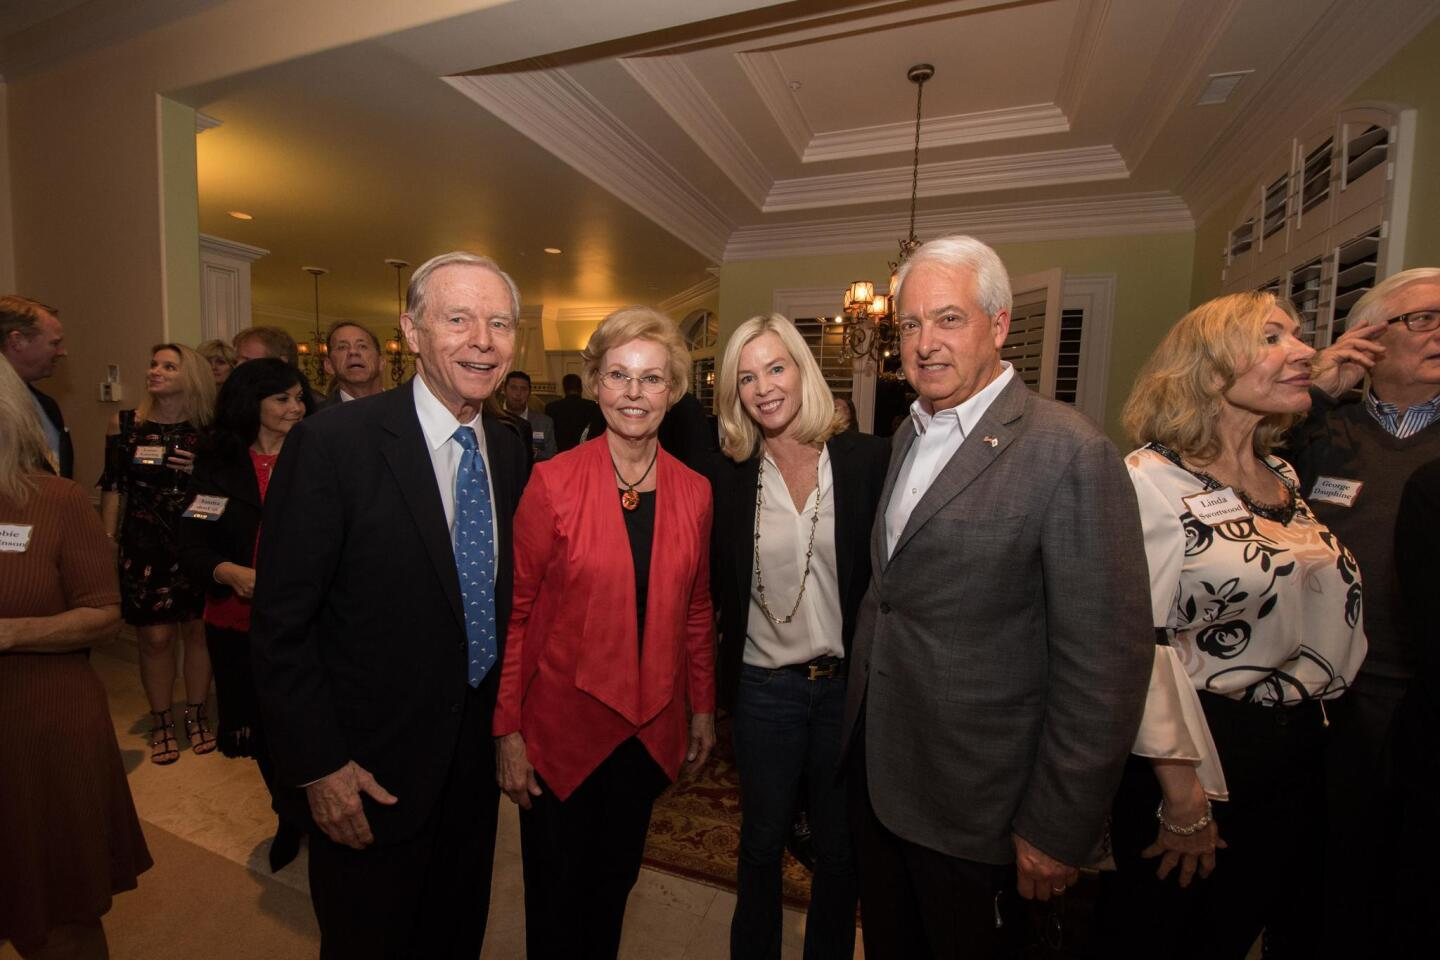 Former Governor Pete Wilson attends event held for John Cox in RSF